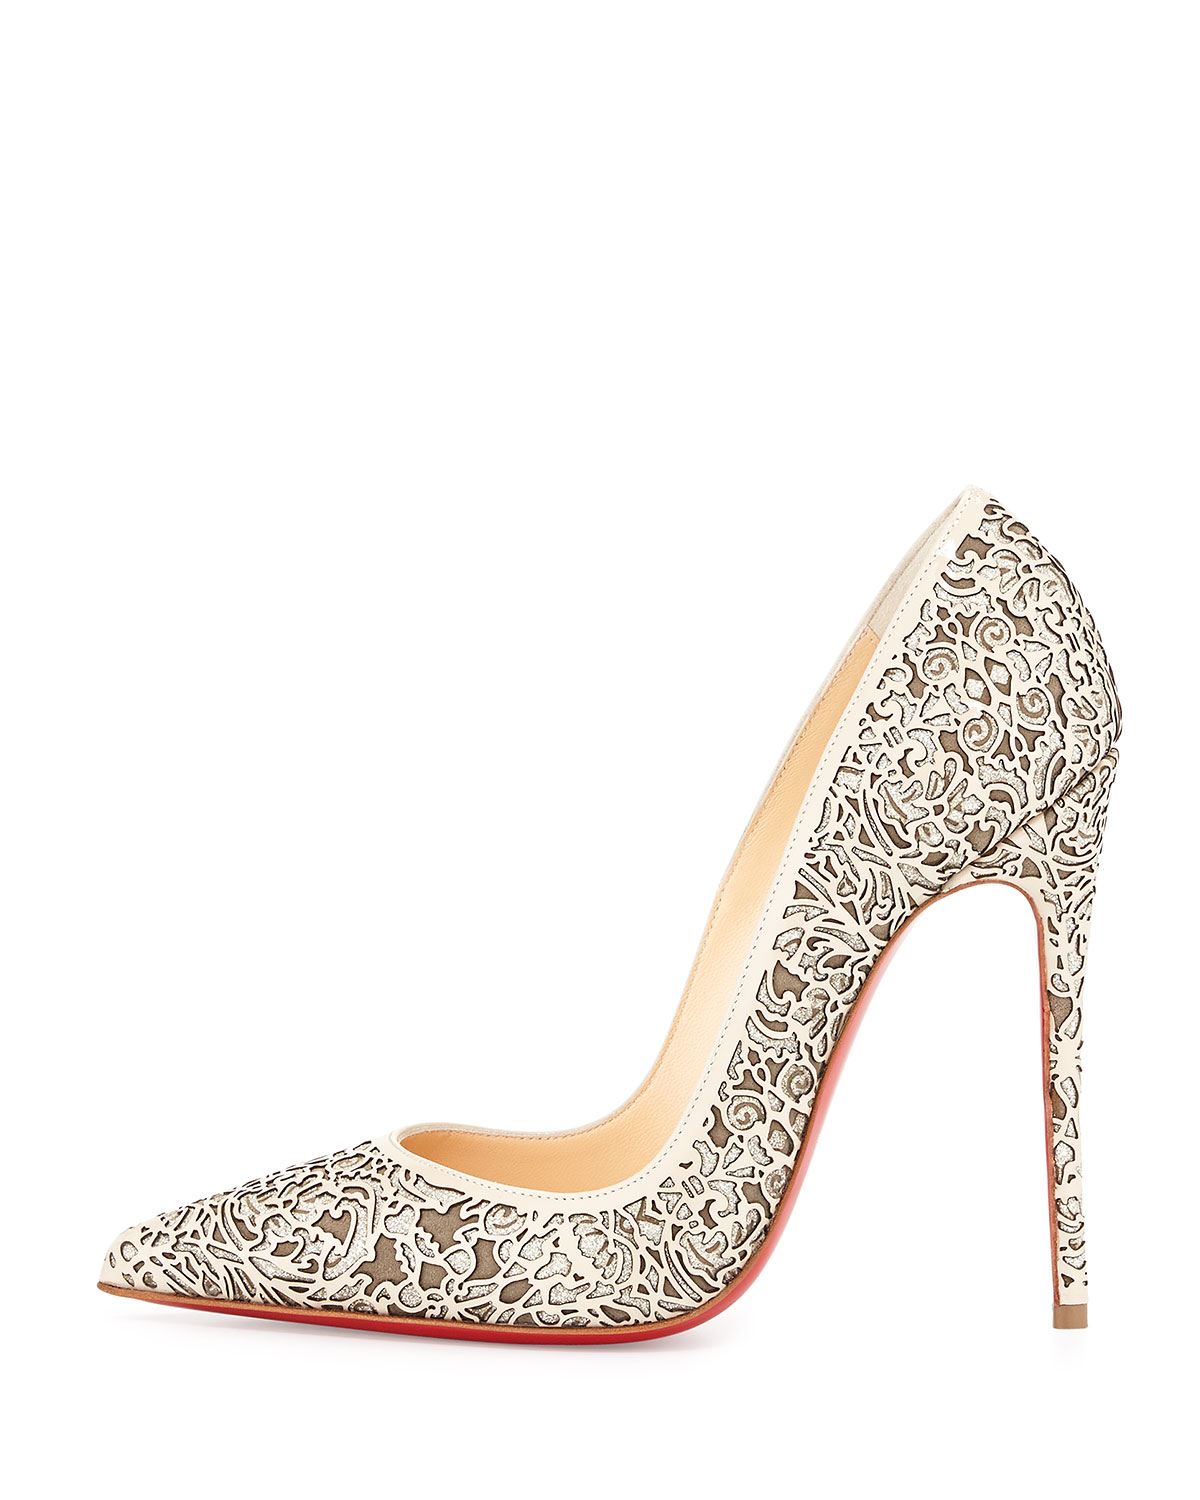 size 40 8d3cb 92a4e Price of Christian Louboutin Heels in South Africa | Luxity